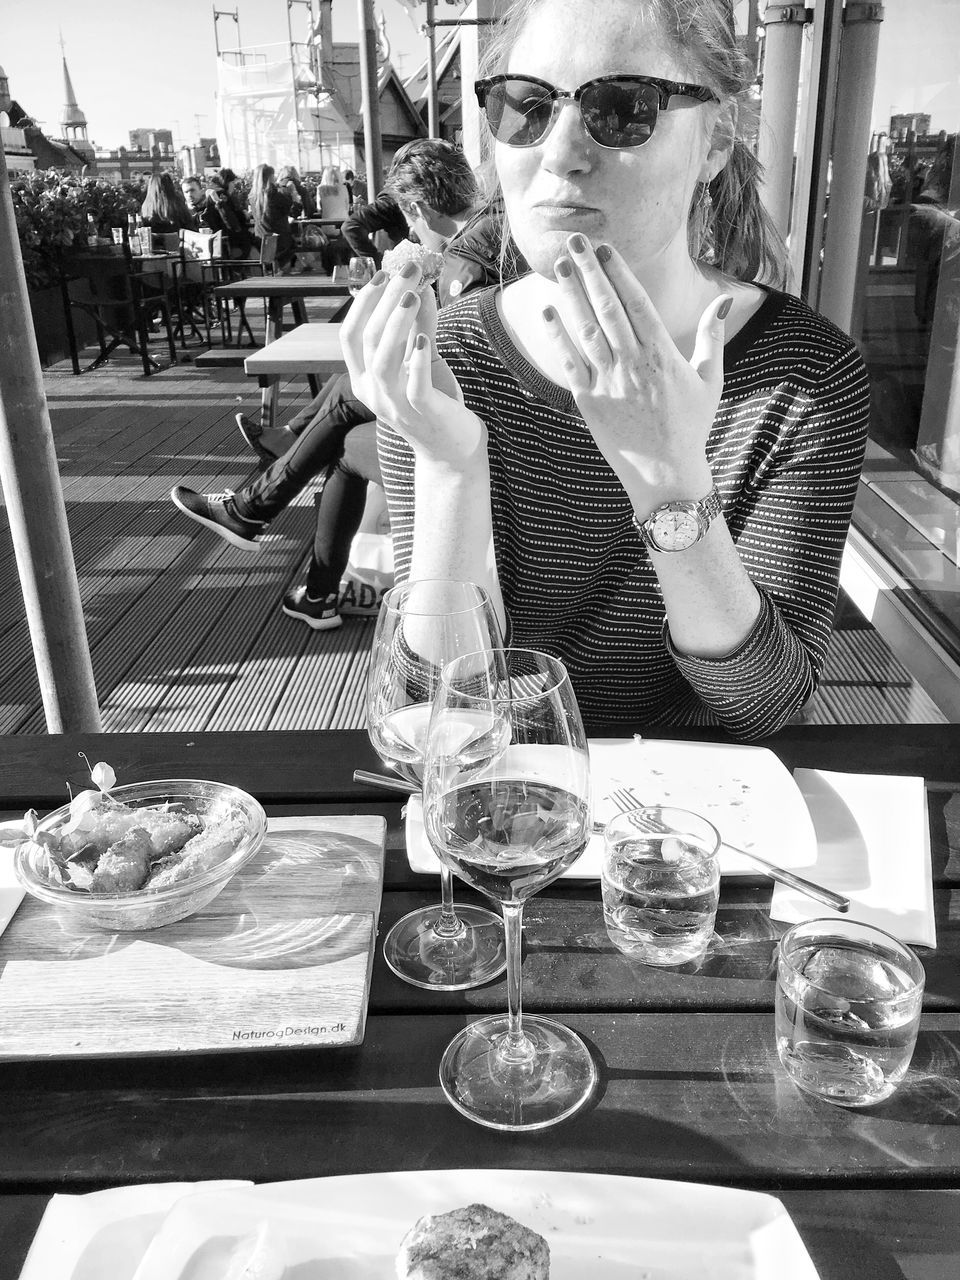 restaurant, food and drink, real people, drink, sunglasses, table, food, wine, drinking glass, one person, wineglass, sitting, alcohol, young adult, lifestyles, young women, outdoors, day, adult, people